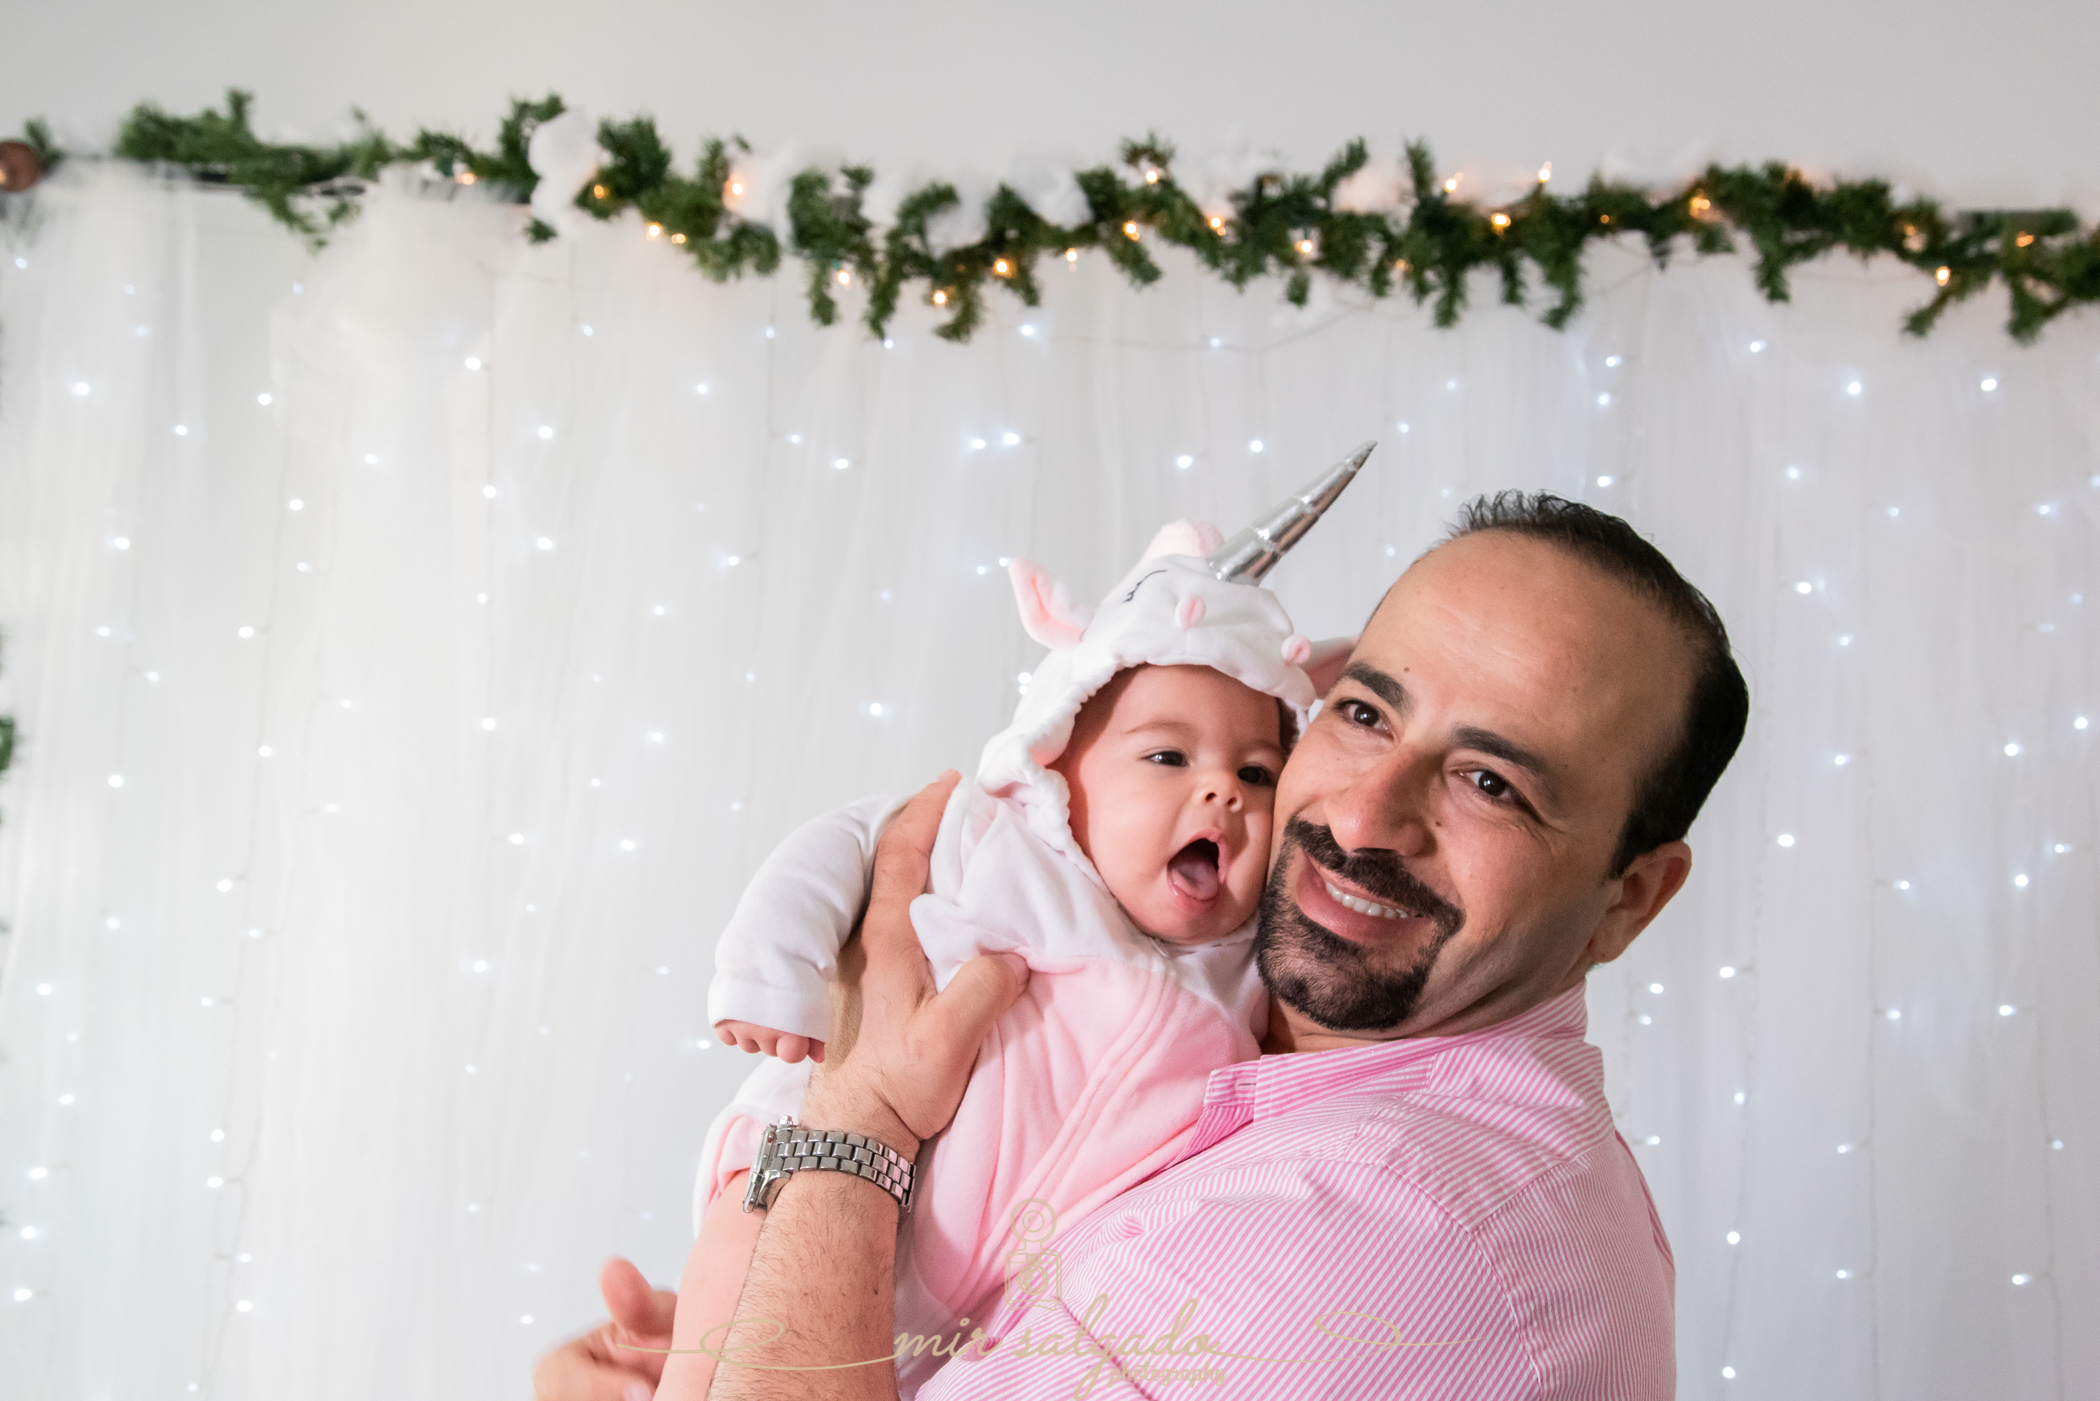 father-and-daughter-christmas-photoshoot, tampa-father-and-daughter-christmas-photos, tampa-christmas-family-pictures, tampa-baby-christmas-photographer